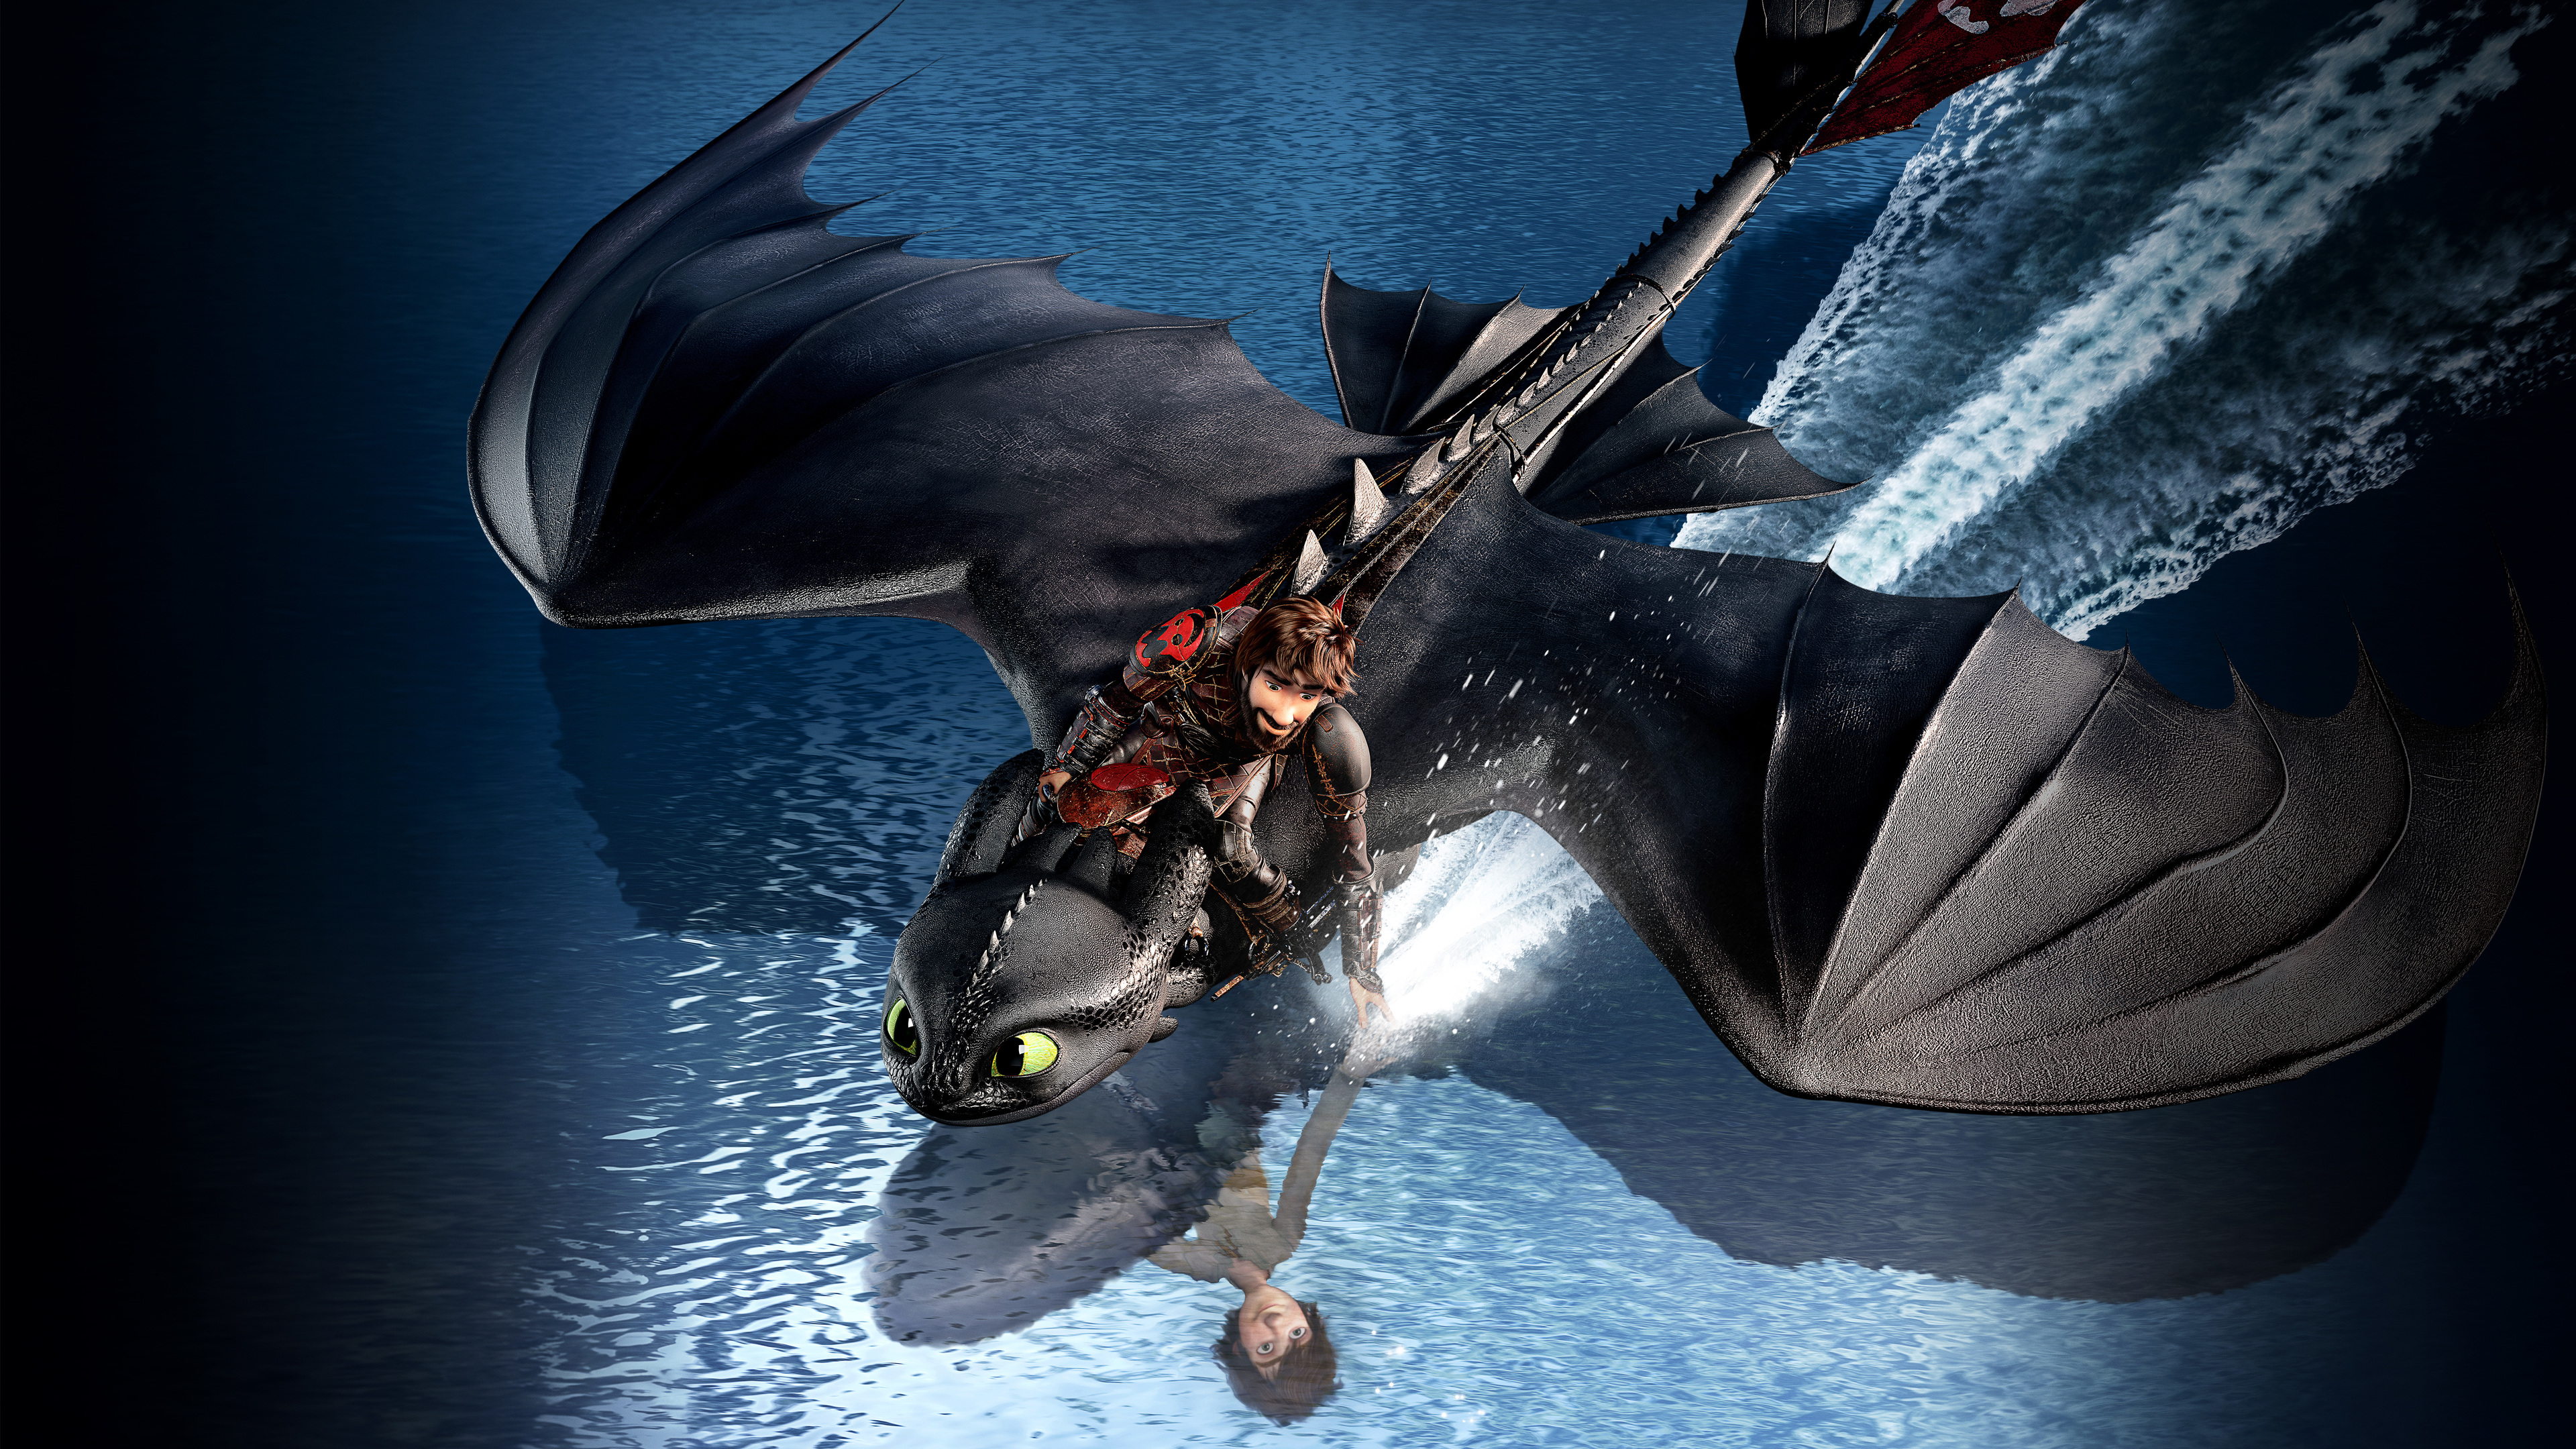 how to train your dragon the hidden world 8k 1539979624 - How To Train Your Dragon The Hidden World 8k - movies wallpapers, how to train your dragon wallpapers, how to train your dragon the hidden world wallpapers, how to train your dragon 3 wallpapers, hd-wallpapers, animated movies wallpapers, 8k wallpapers, 5k wallpapers, 4k-wallpapers, 2019 movies wallpapers